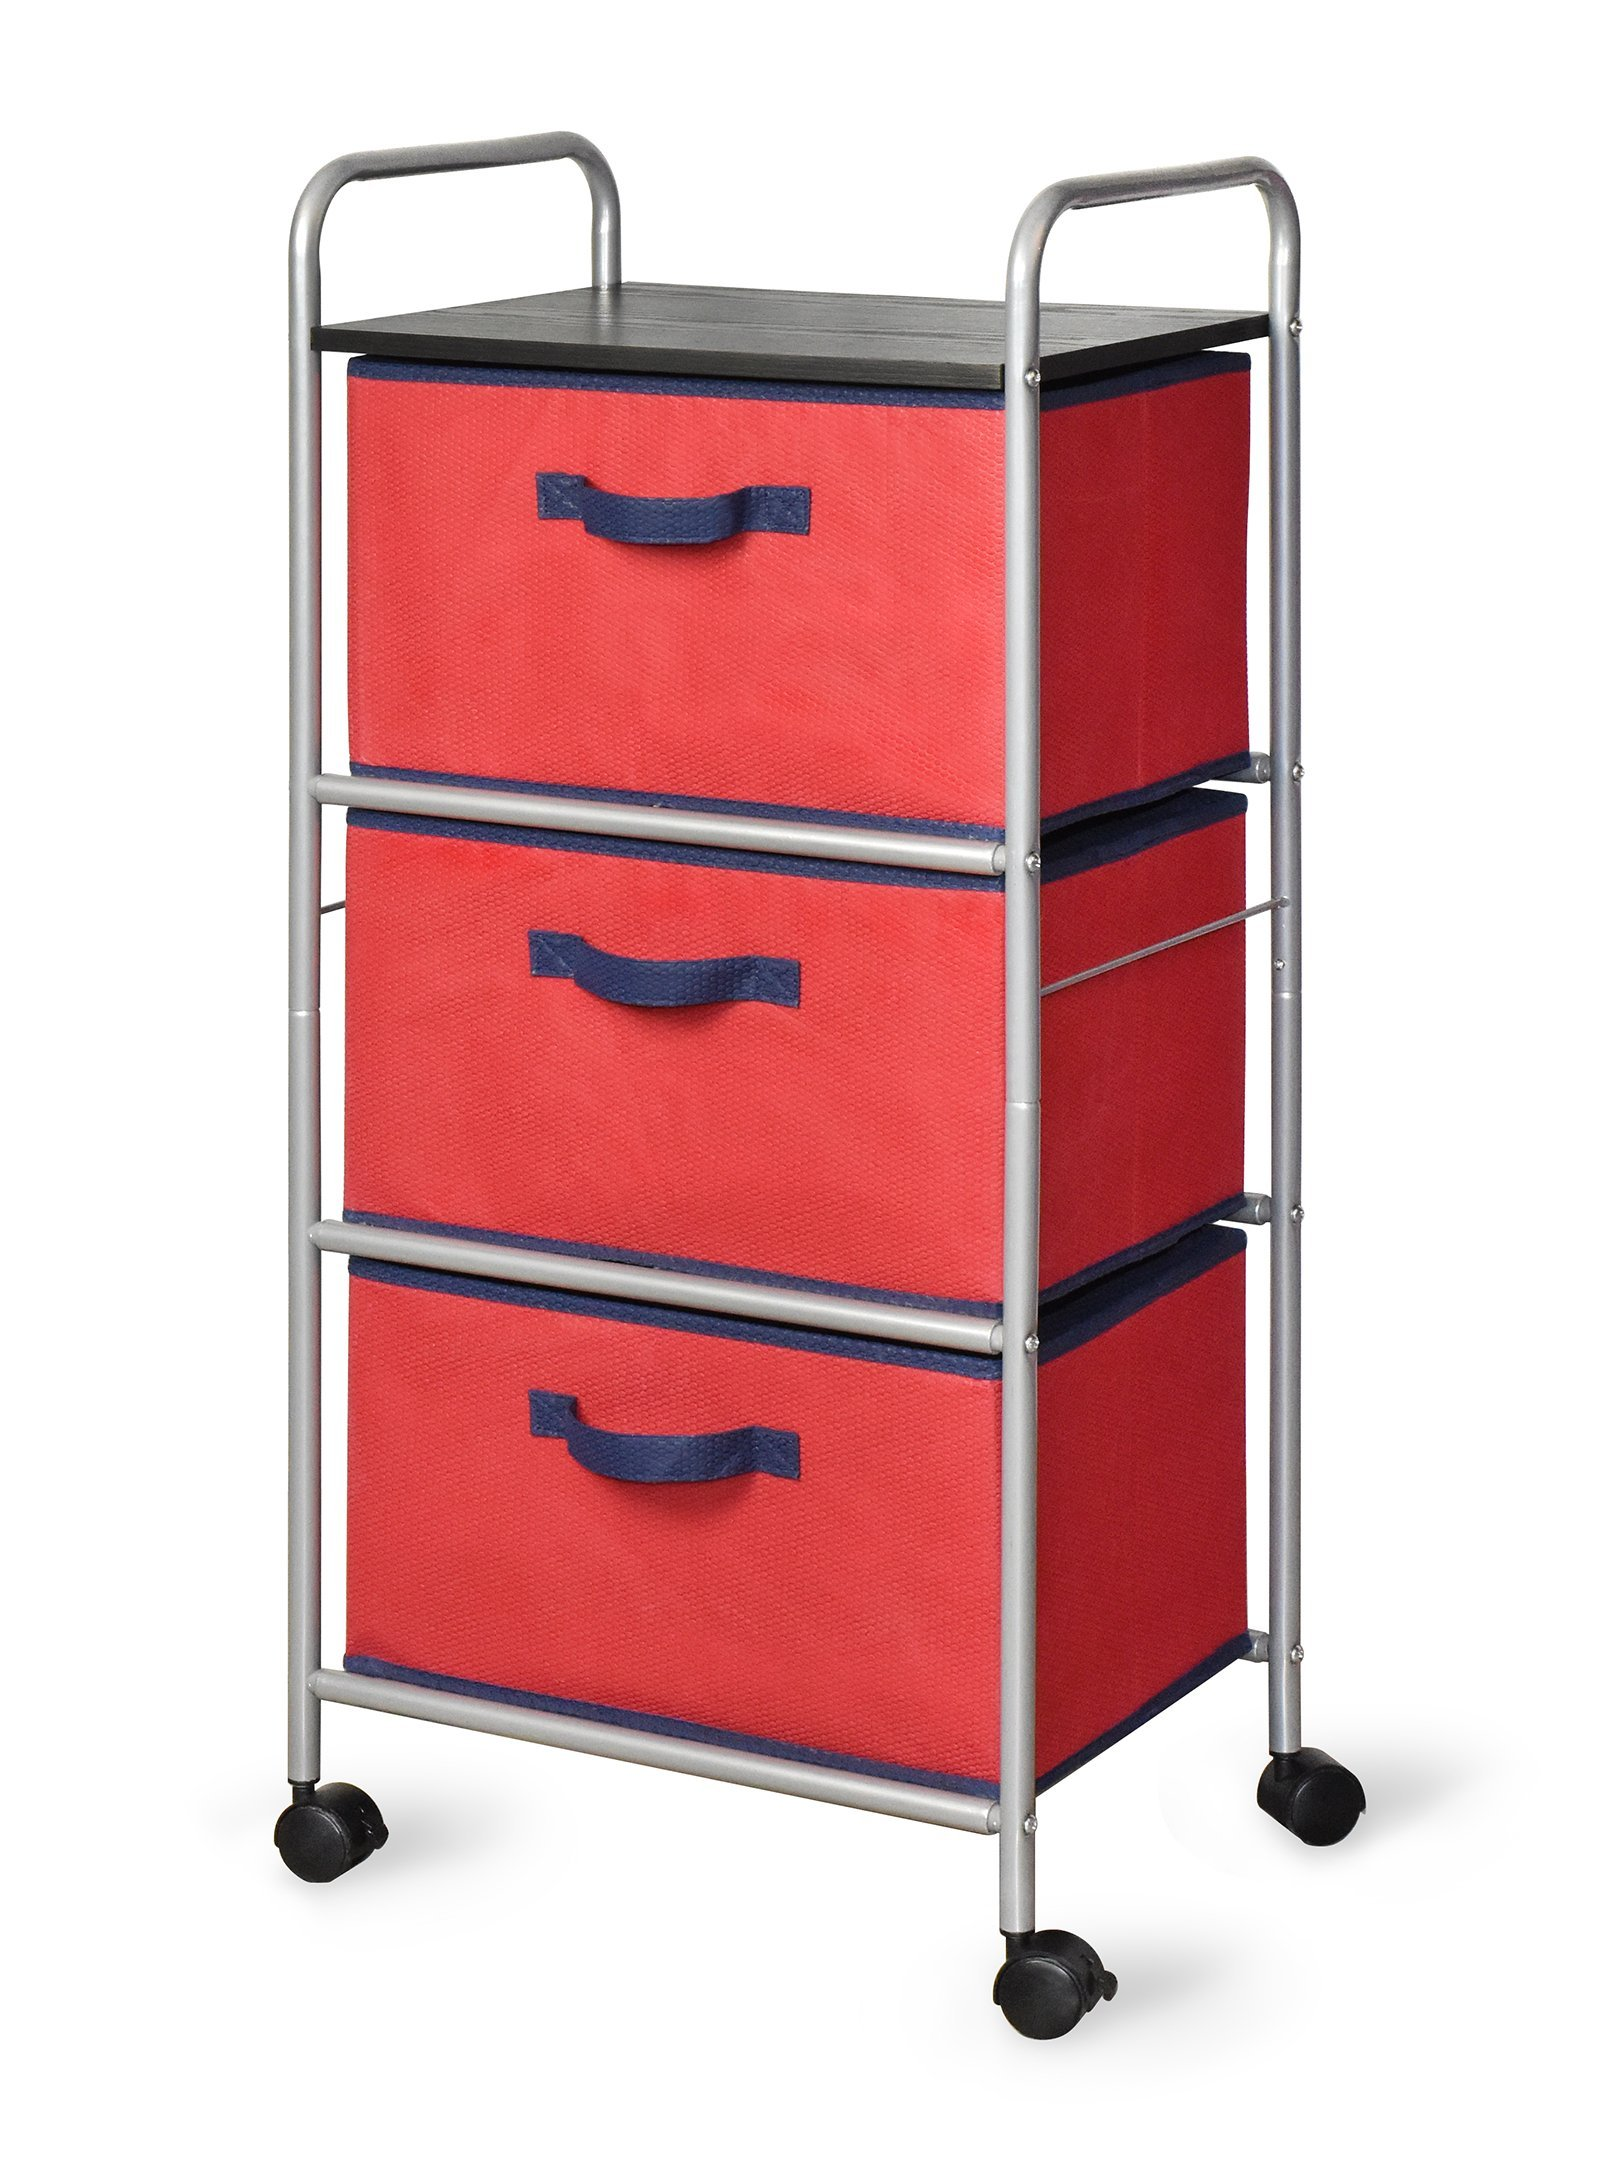 Bintopia 3 Drawer Cart with MDF Top, Red/Blue Trim